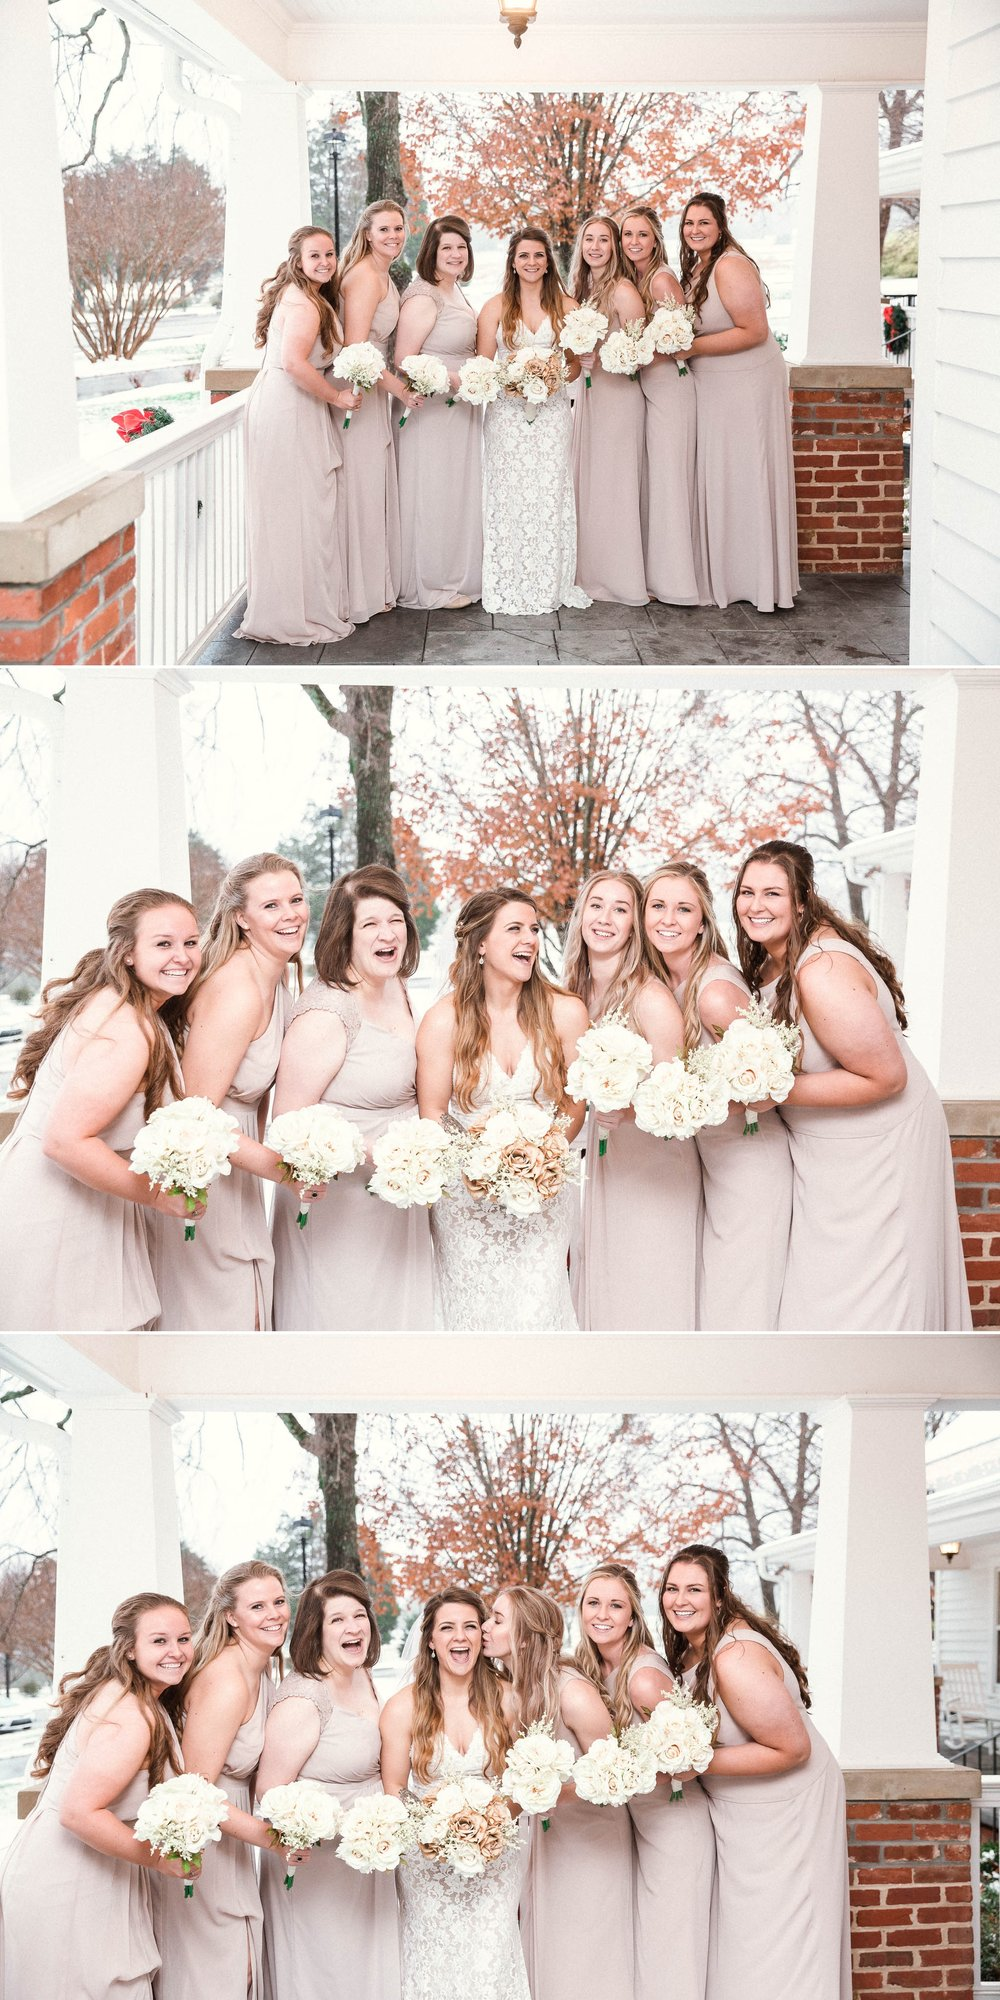 Bridesmaids Portraits - Jessica + Brandon - Snowy Winter Wedding at the Rand Bryan House in Garner, NC - Raleigh North Carolina Wedding Photographer